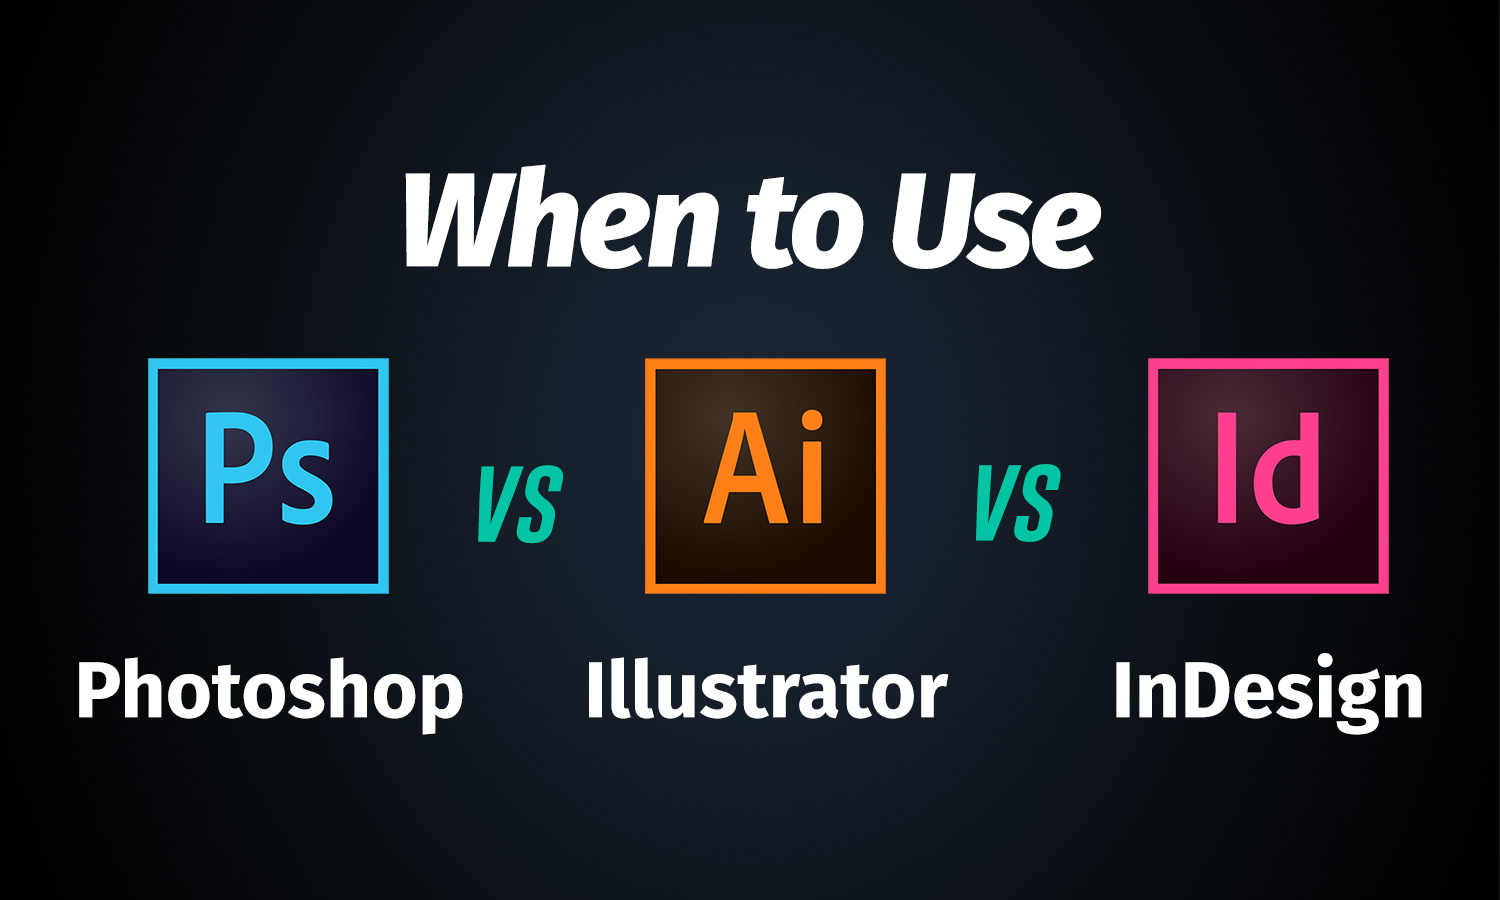 when to use adobe photoshop vs illustrator vs indesign